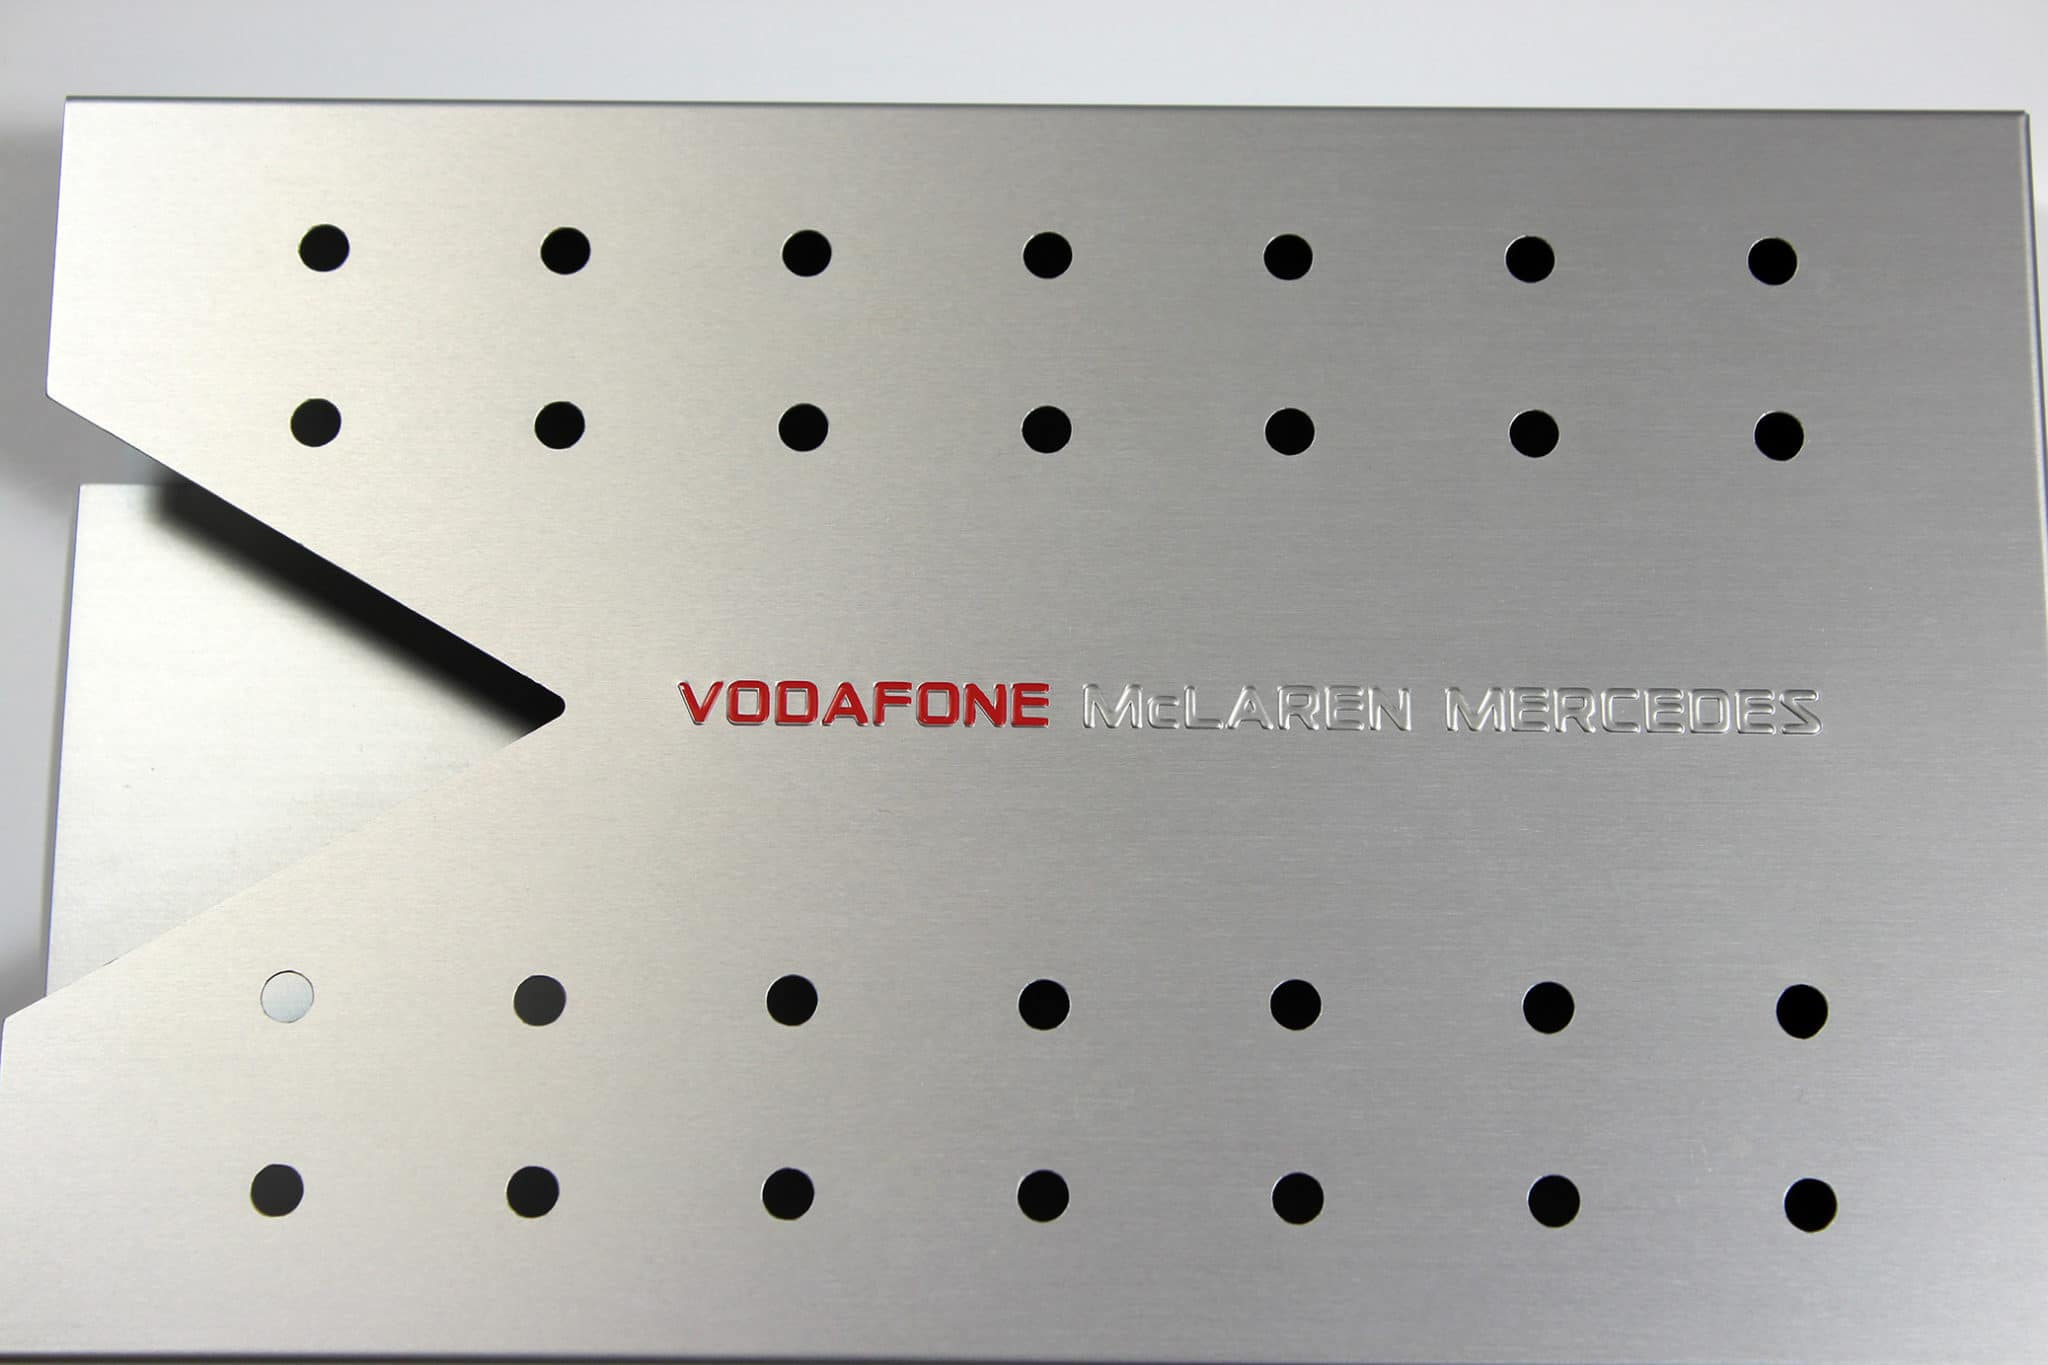 Vodafone Hotlaps metal sleeve with brochure insert